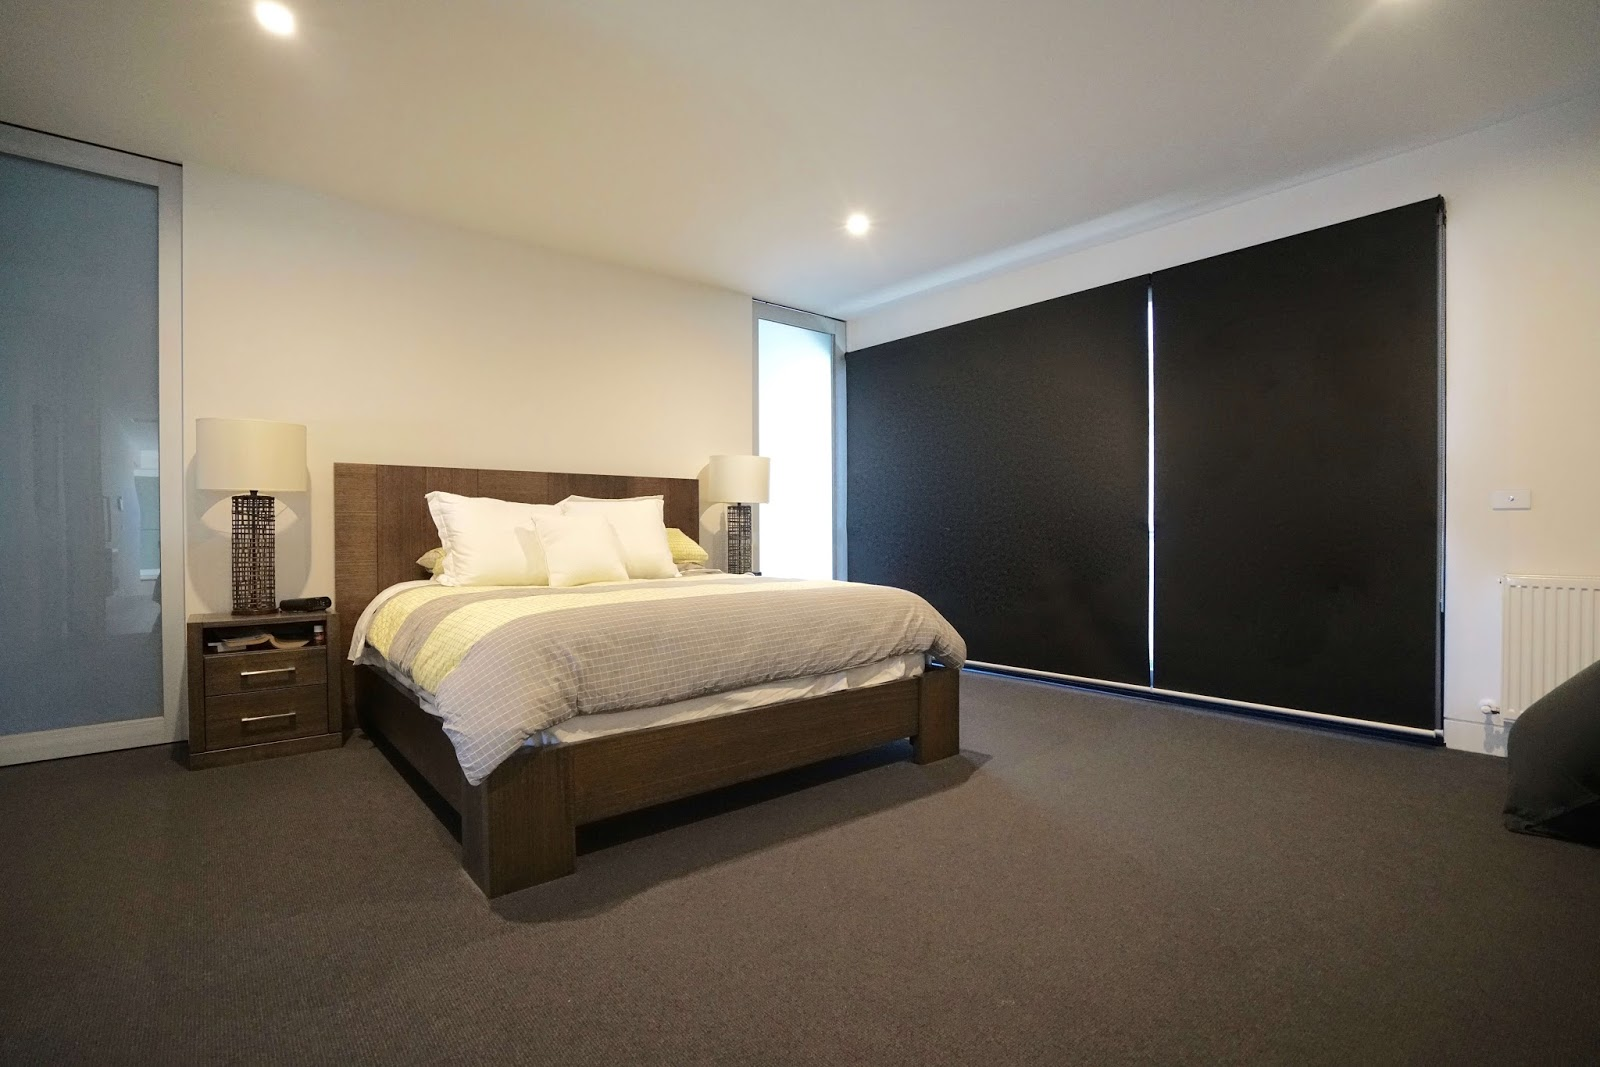 Bedroom with Black Roller Blinds